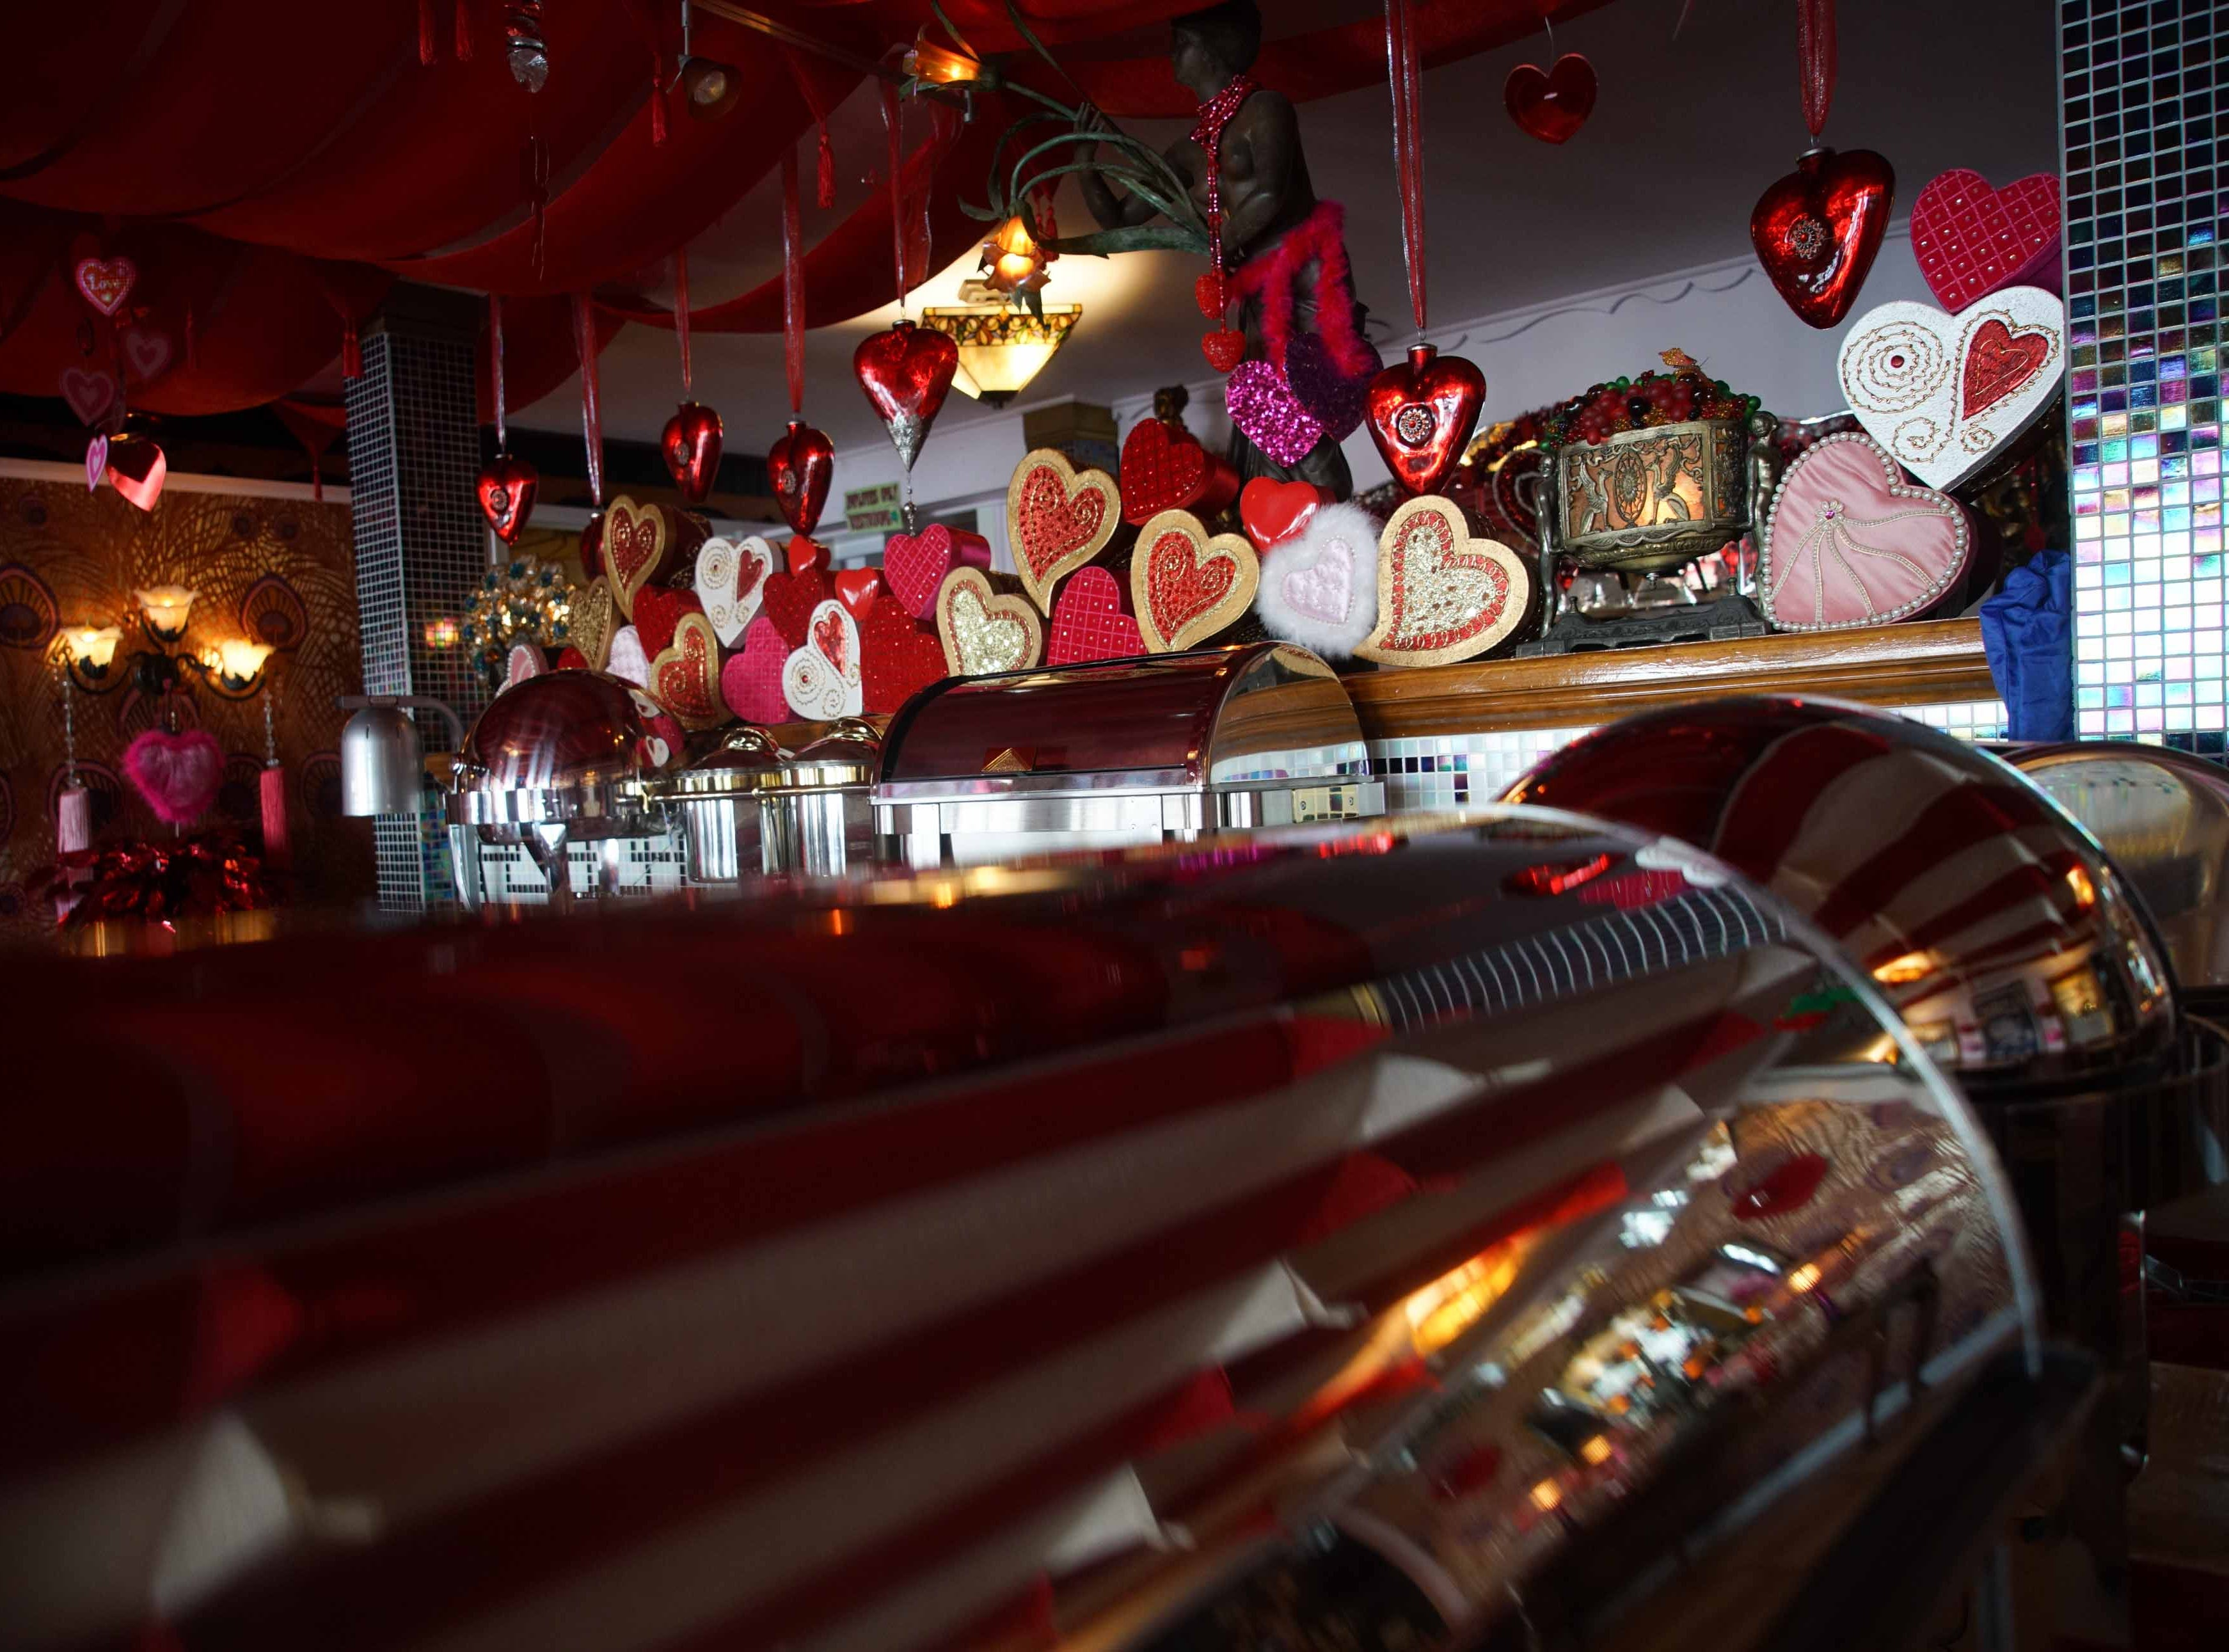 Hearts surround the buffet area of Serendipity Restaurant.